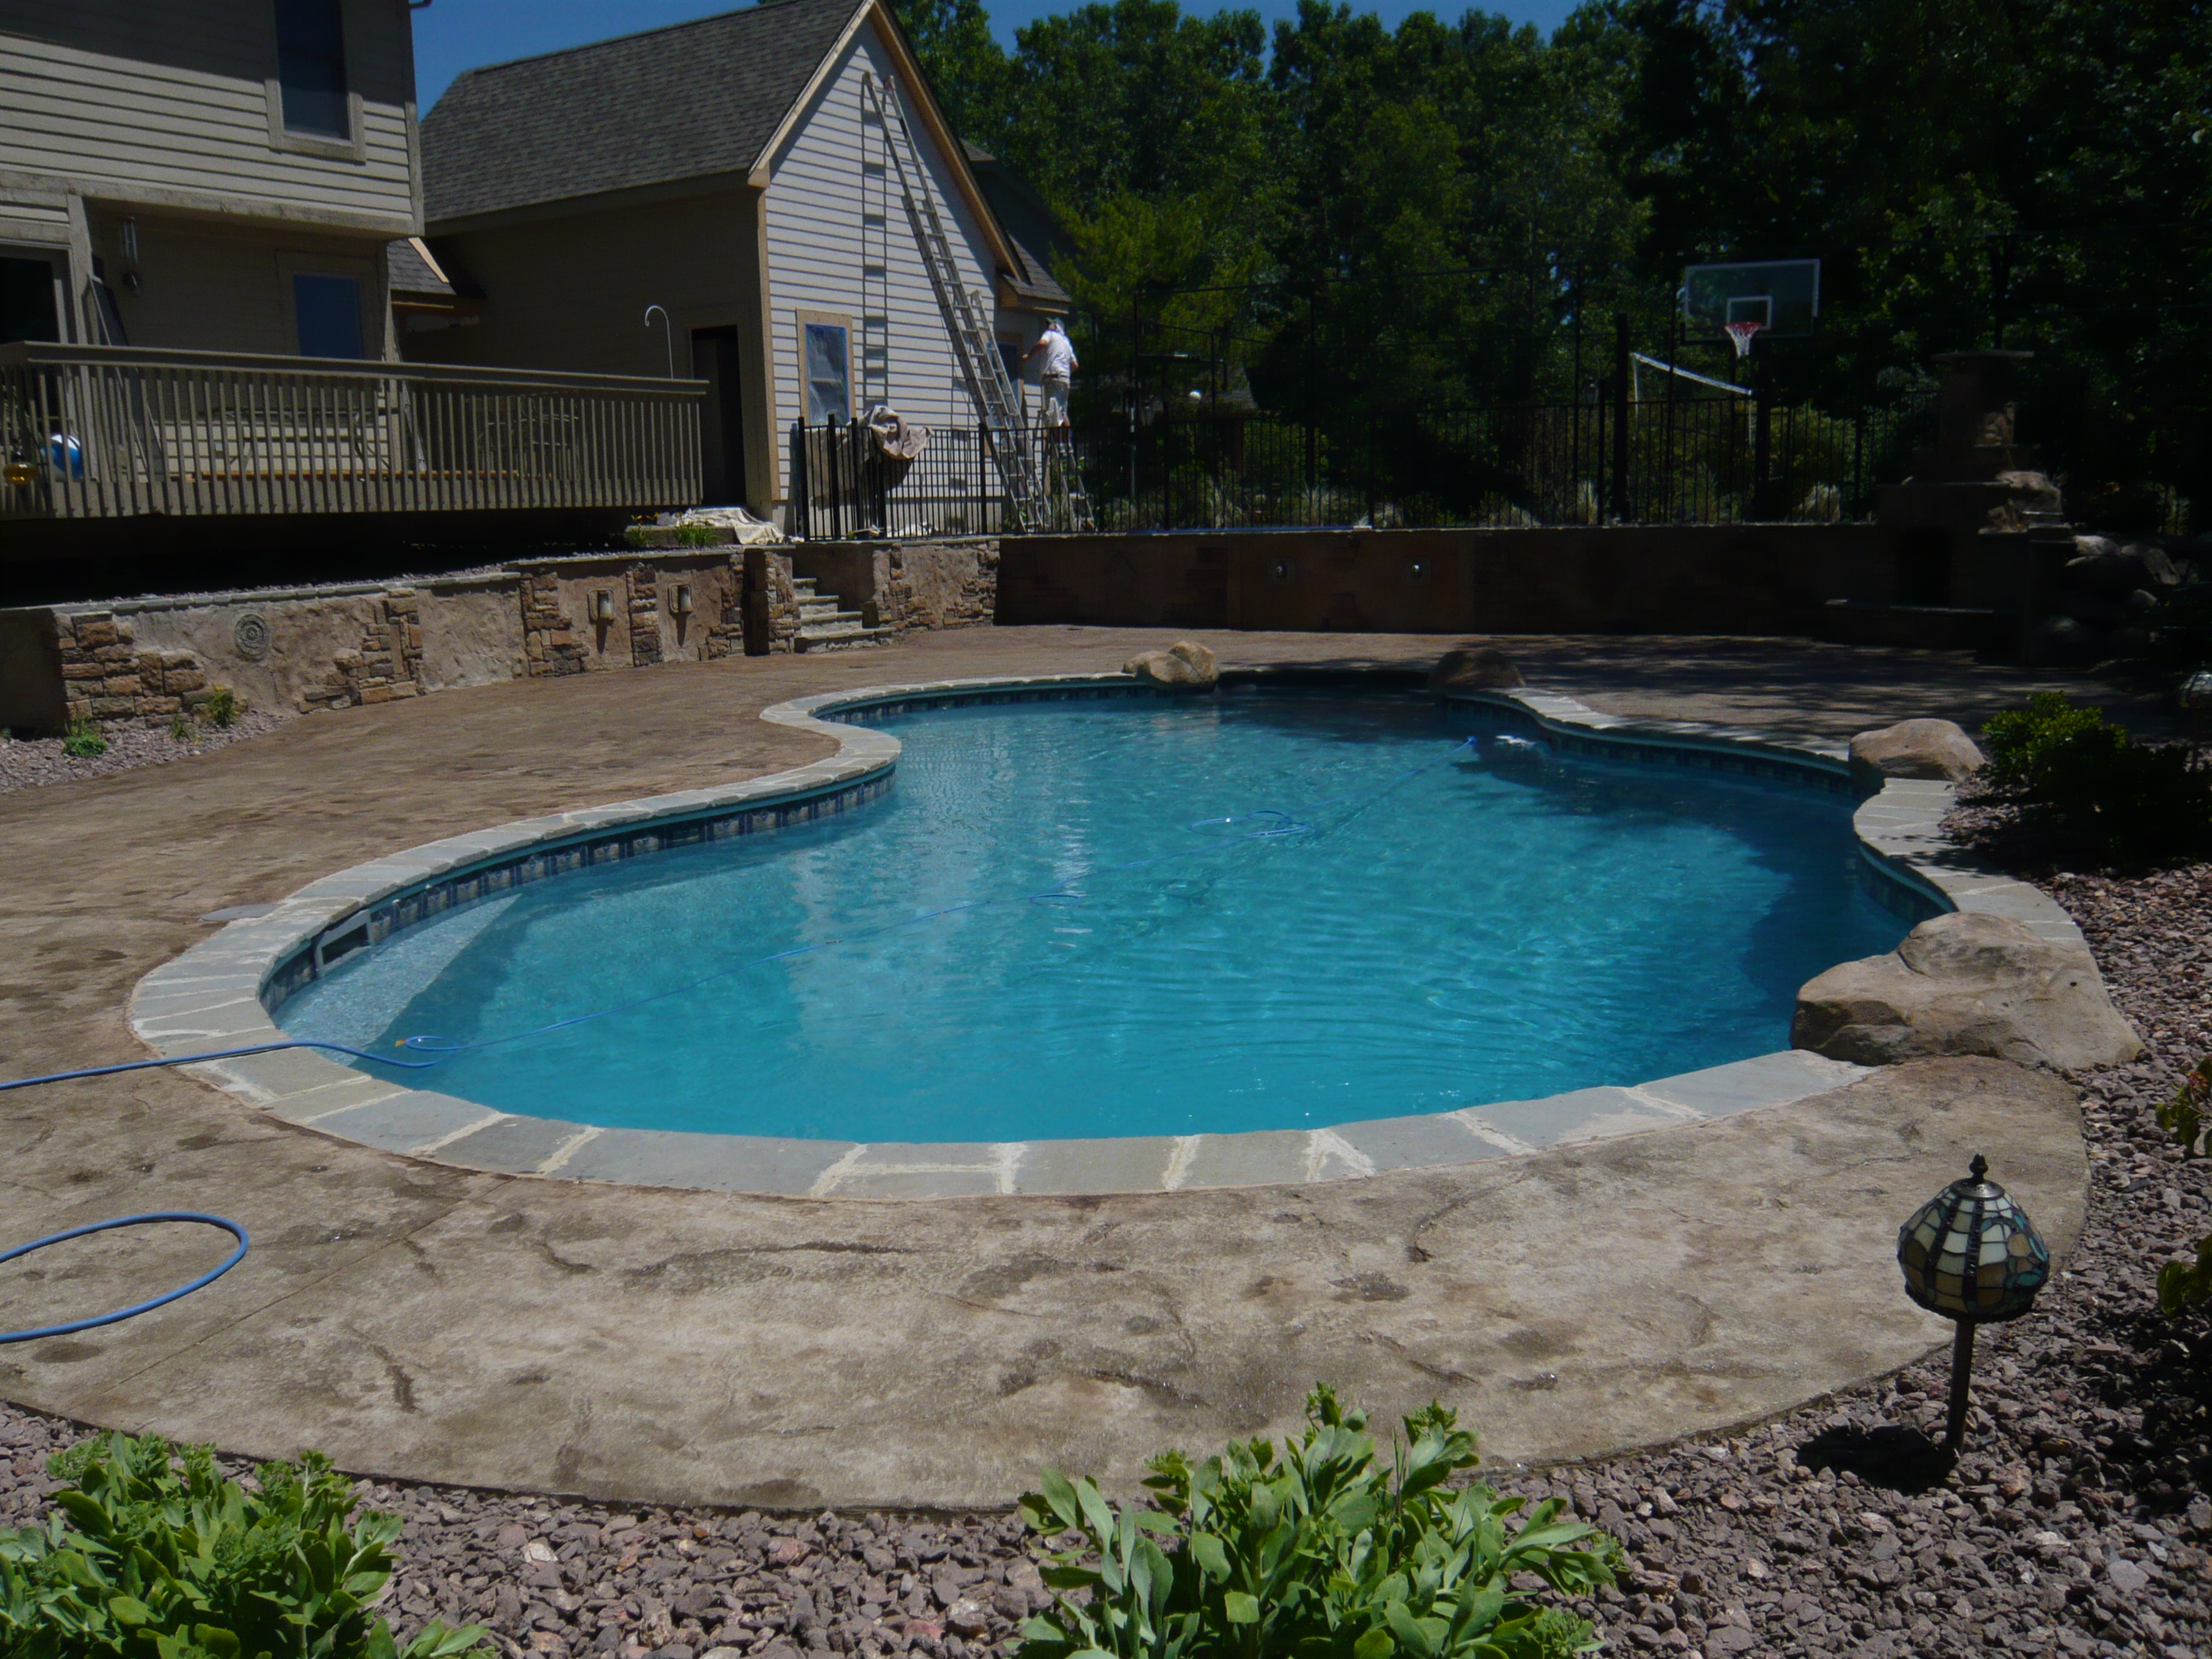 Debest july 2010 vinyl liner pool and retaining wall for Vinyl swimming pool